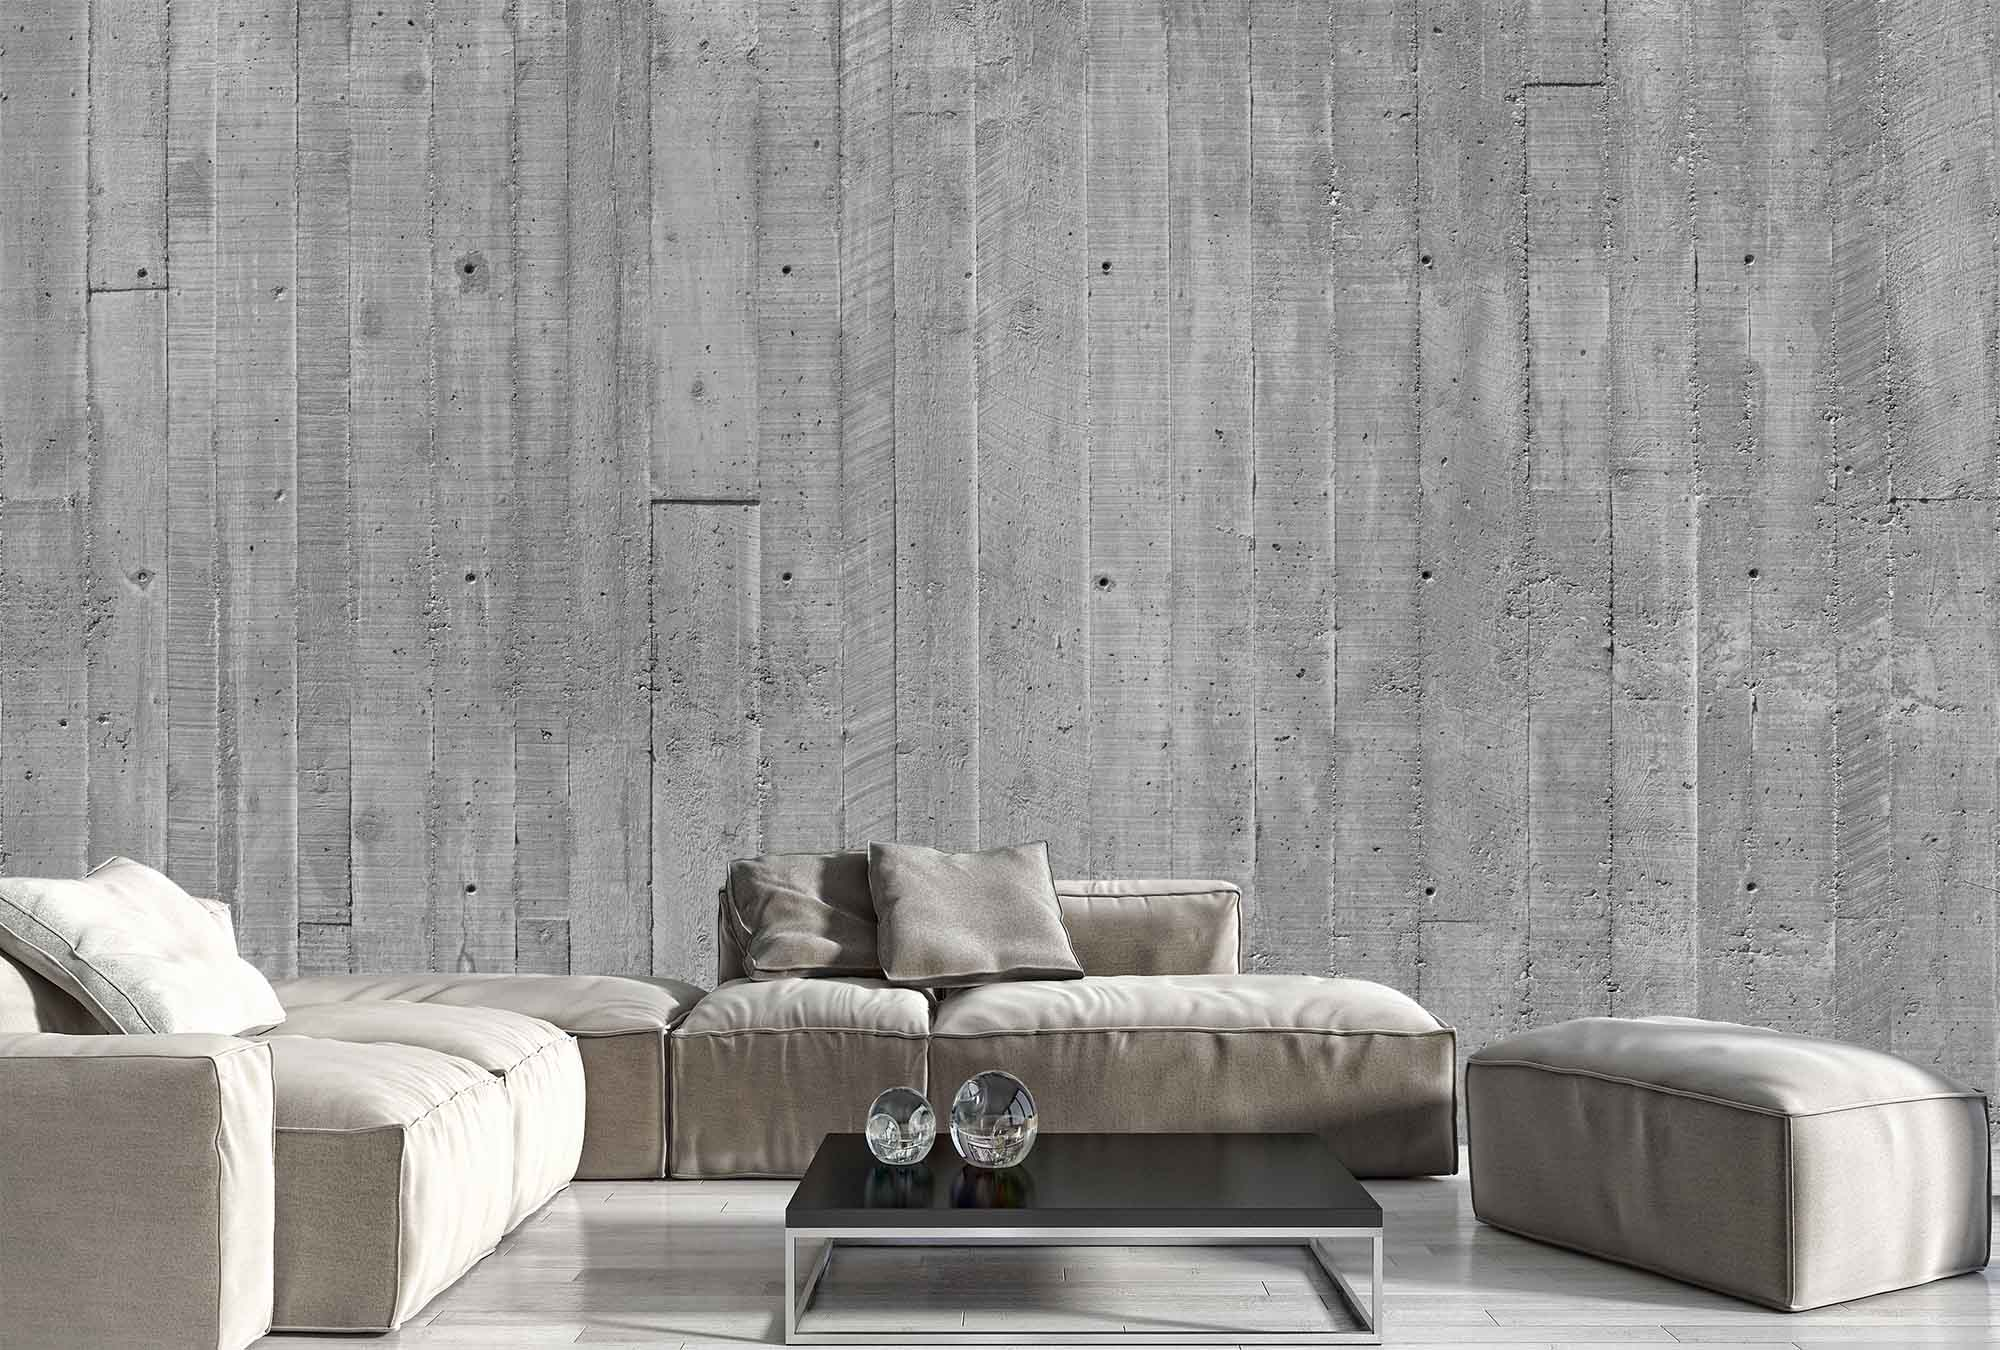 Concrete Effect Feature Wall Using Cement Fibre Board With Plaster And Paint Finish Techniques Cool Idea Awesome Bold Interior Interior Design Home Decor